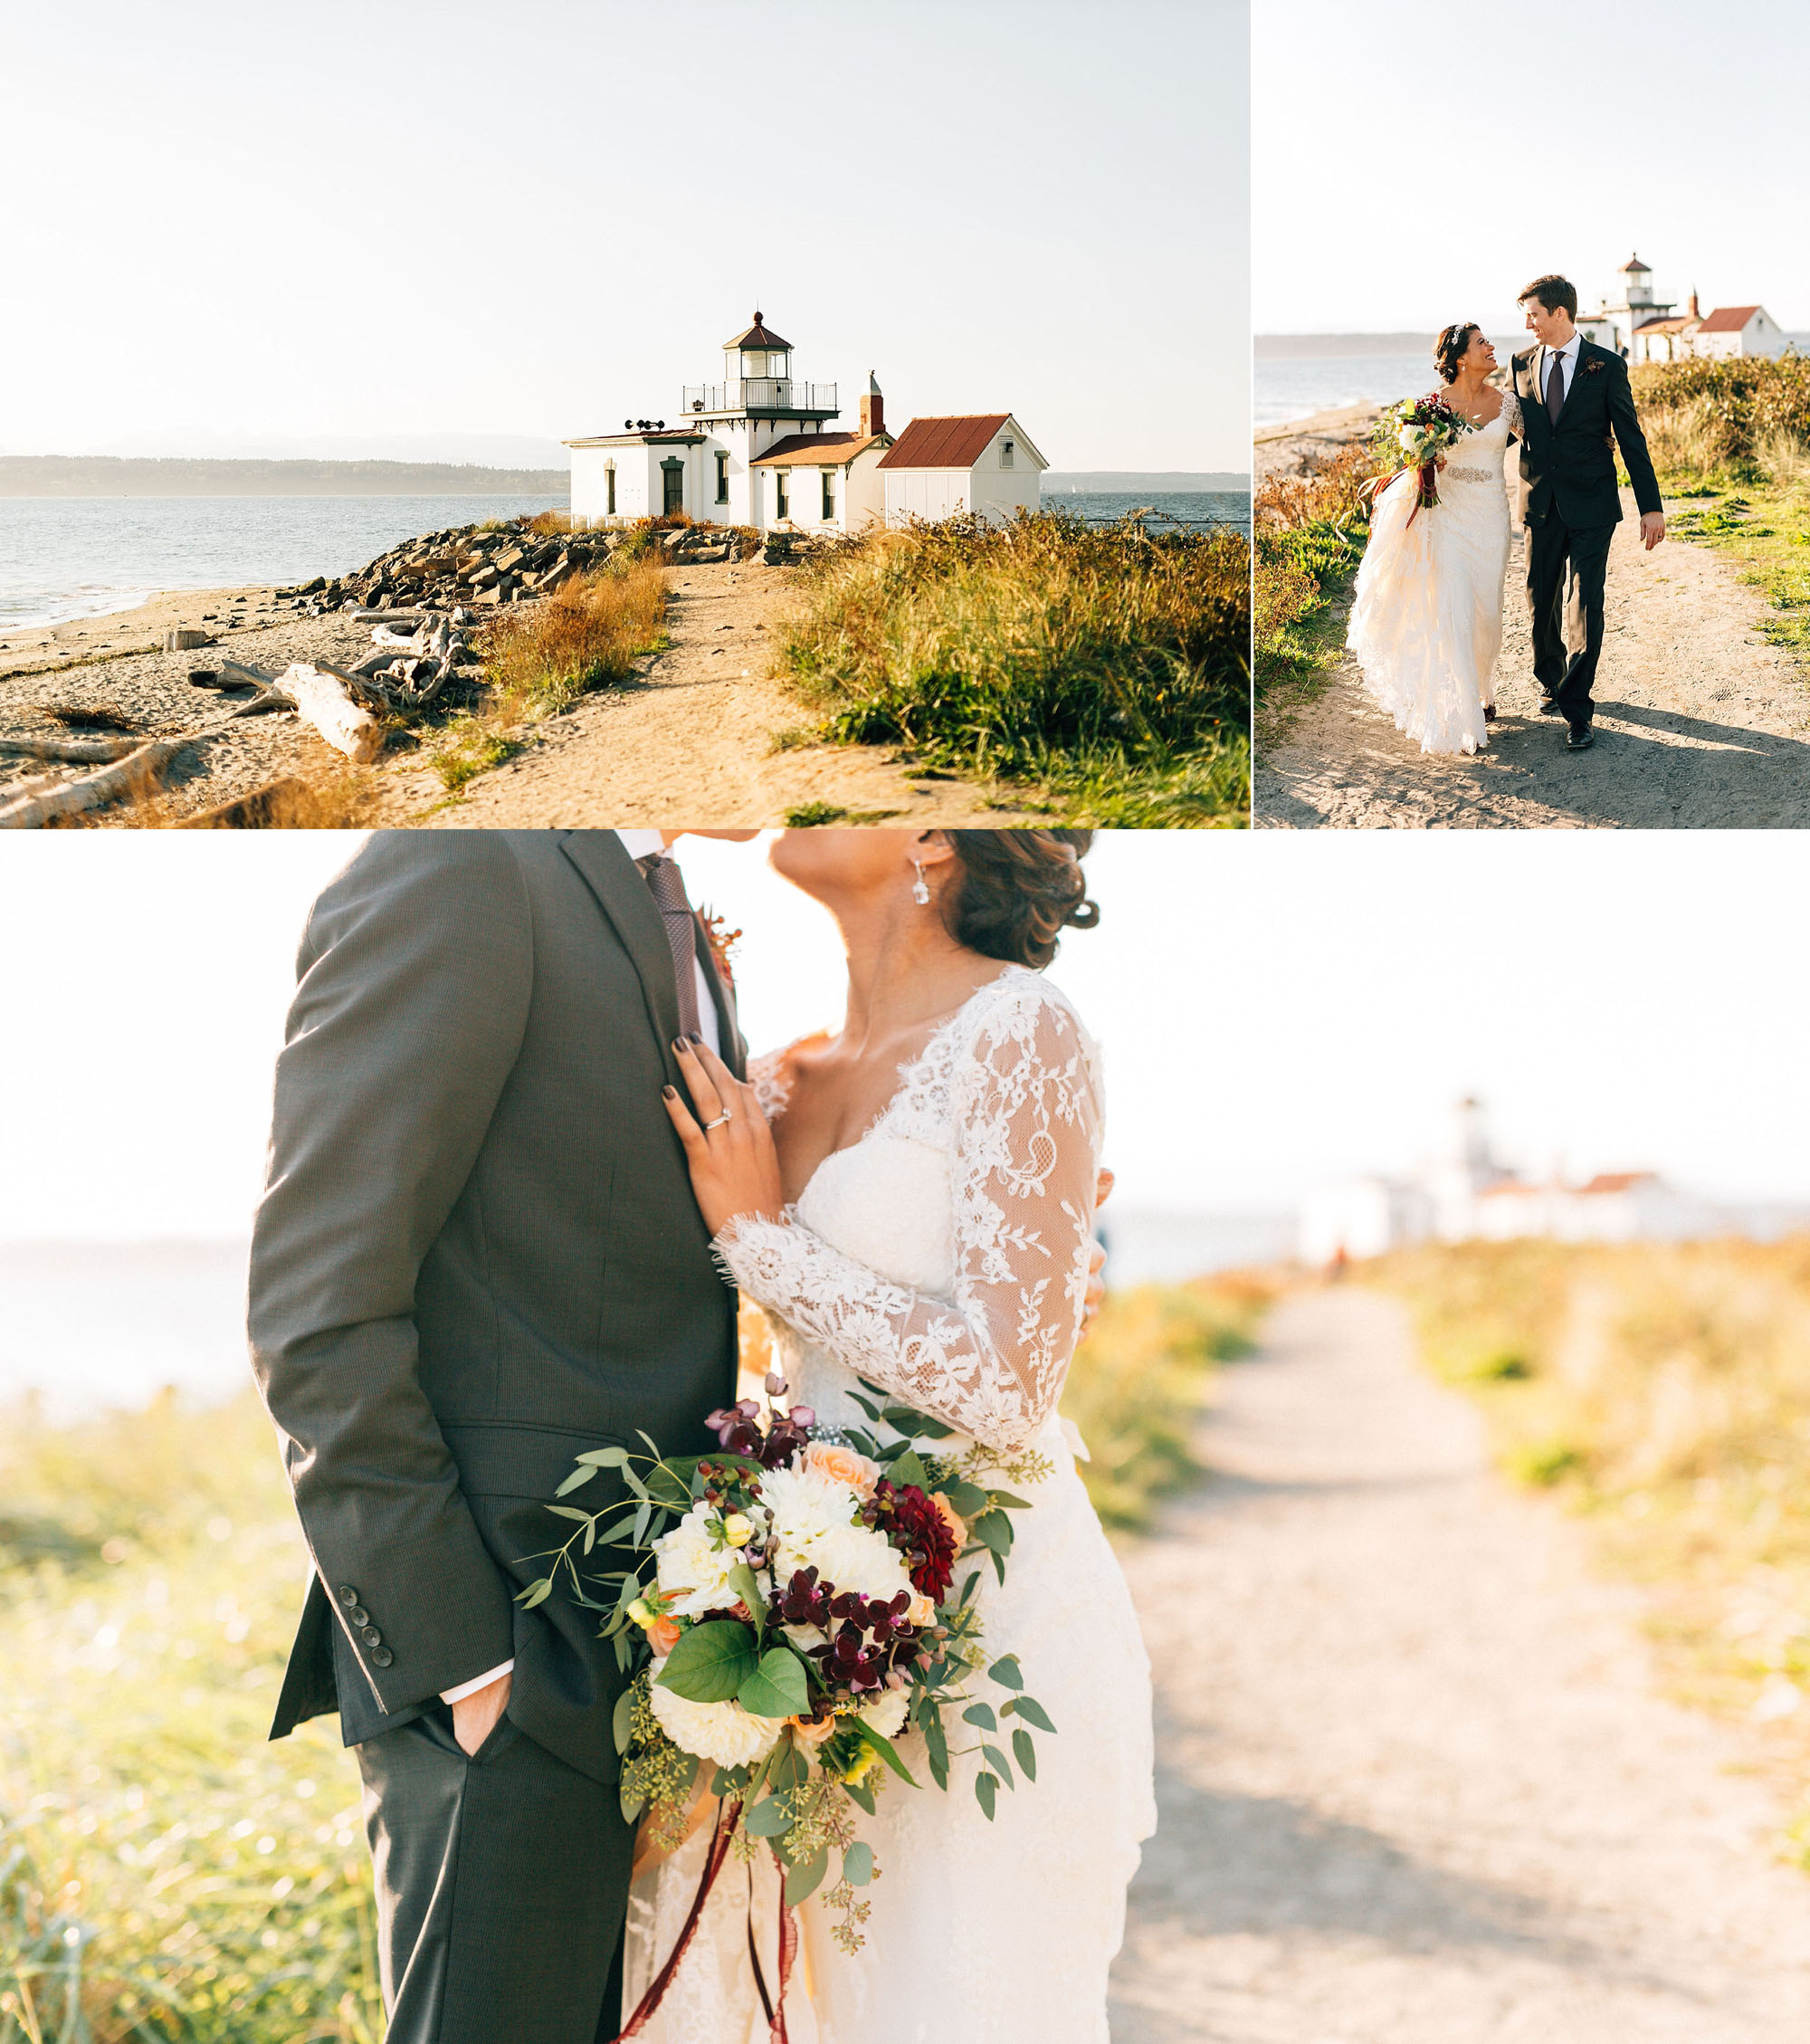 ashley vos photography seattle area wedding photographer_0807.jpg